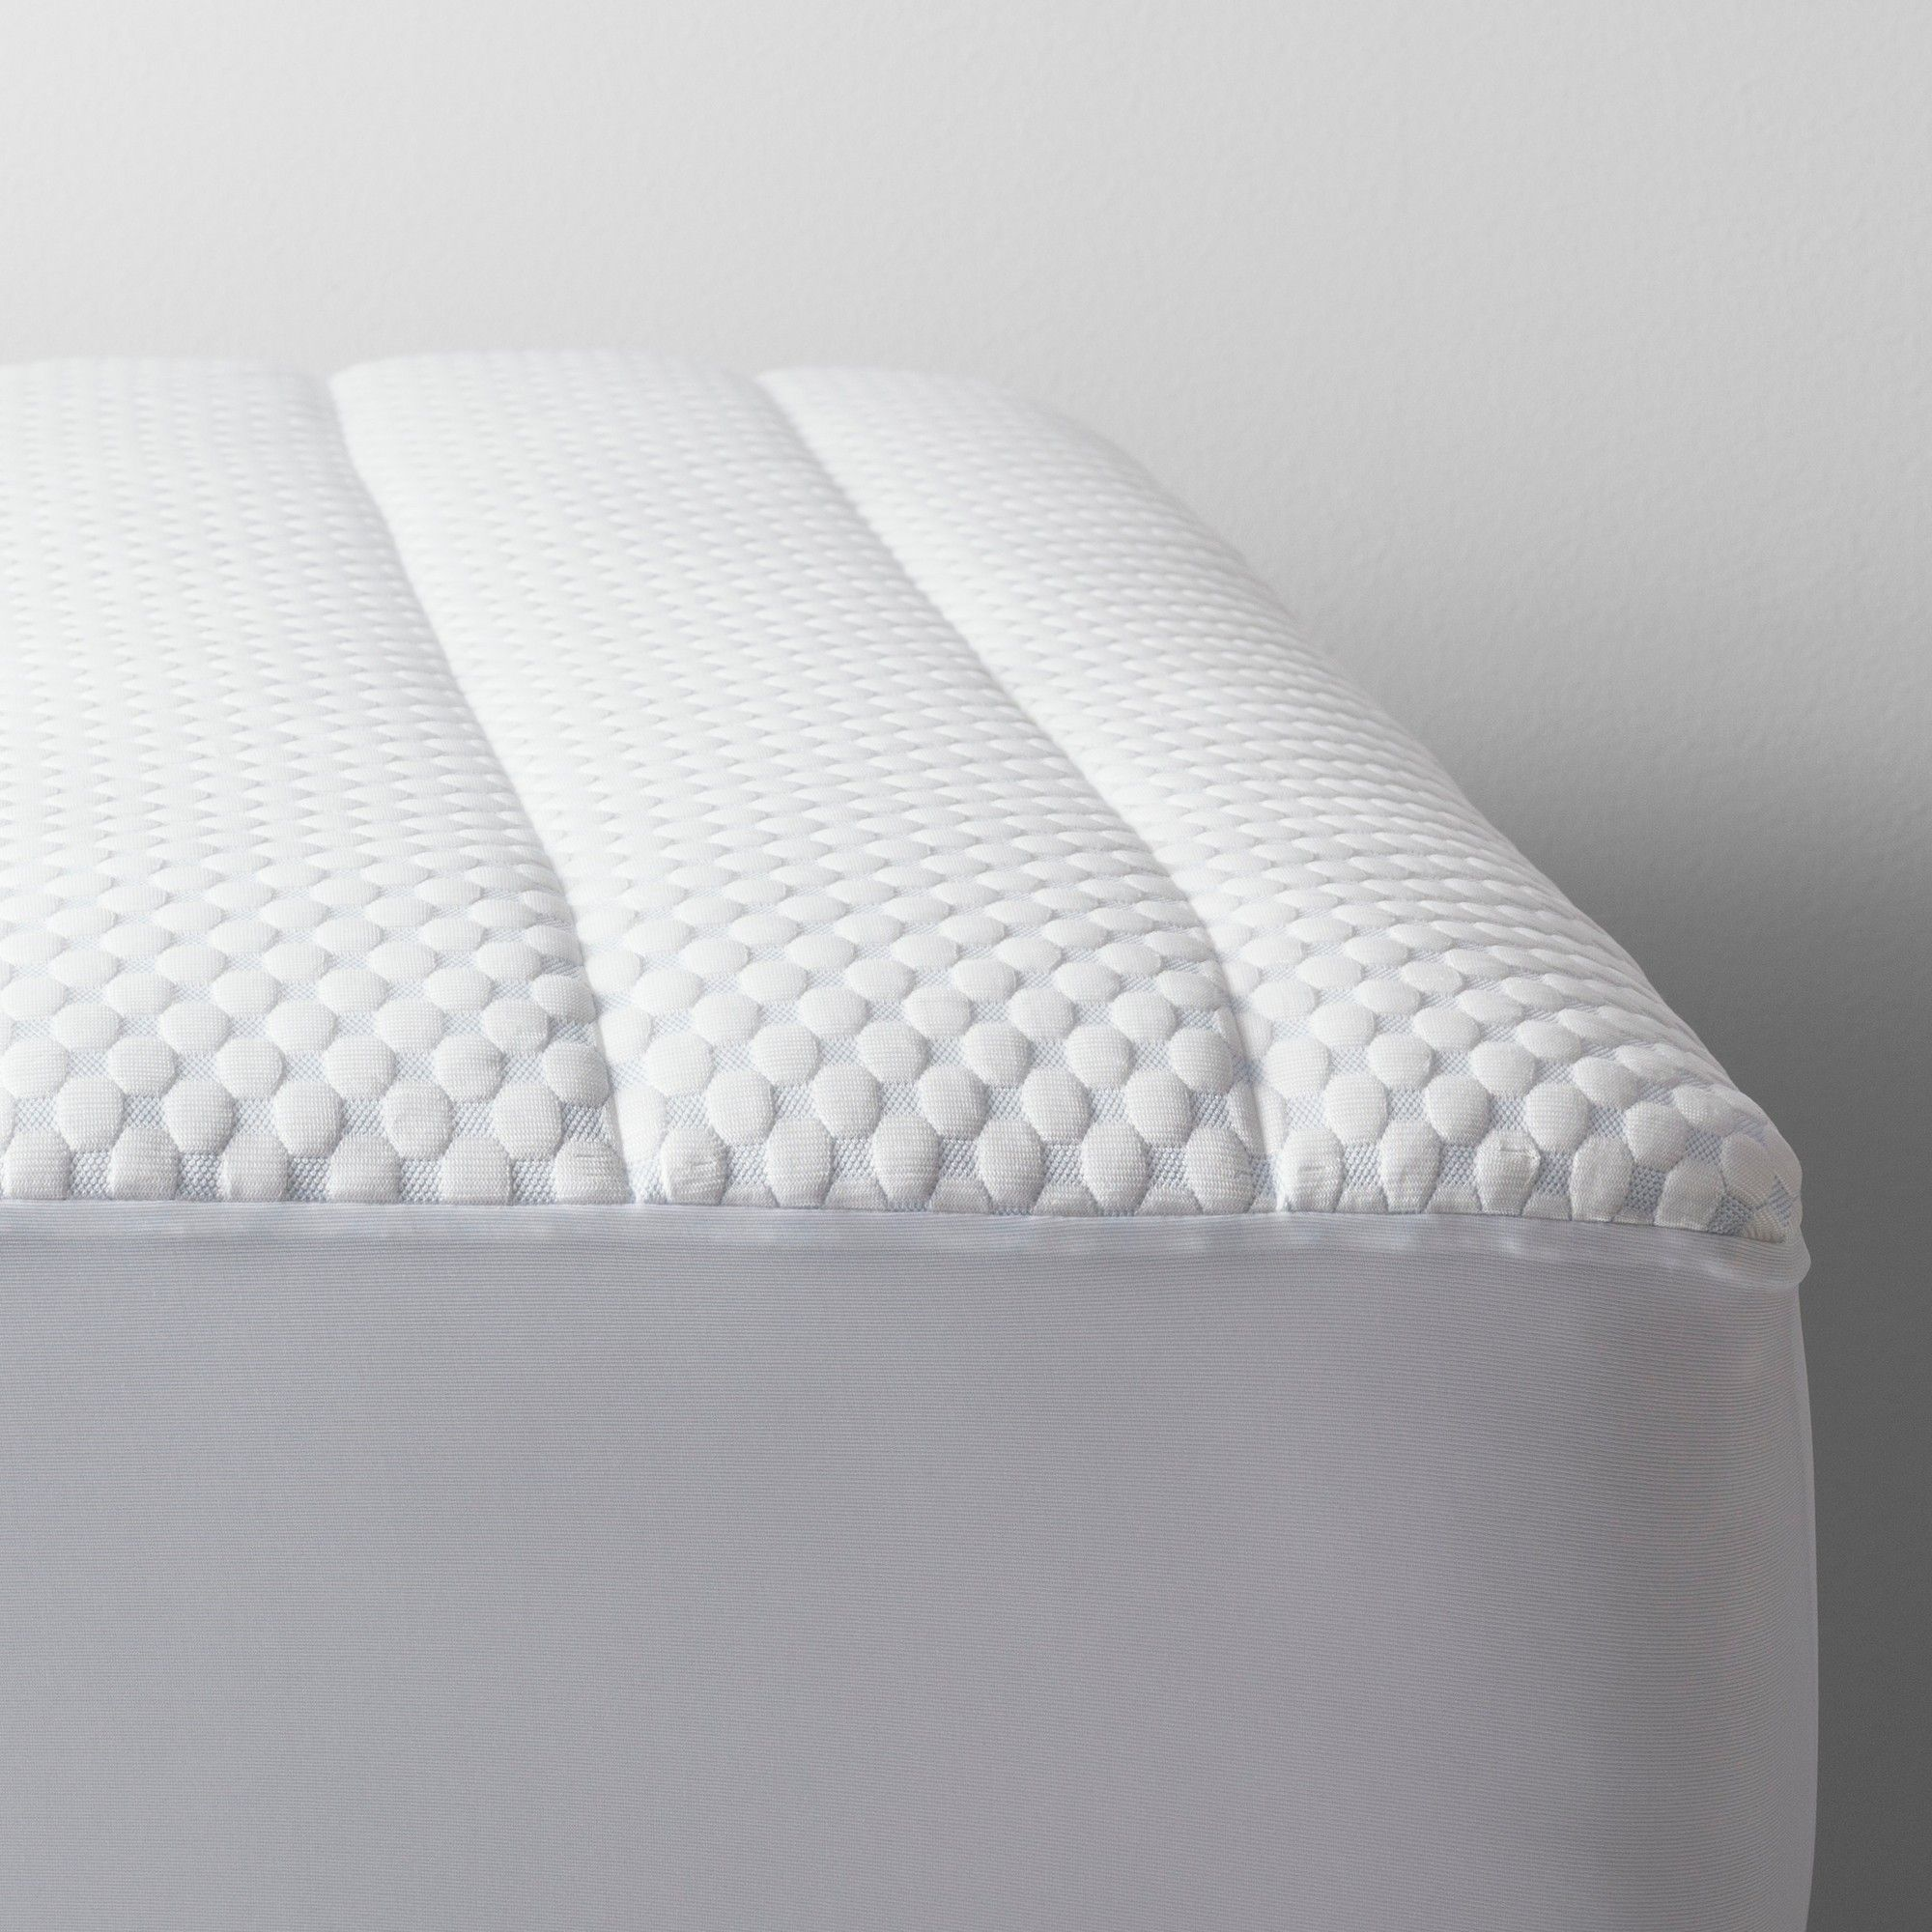 Cool Touch Mattress Pad Twin White Made By Design In 2020 Mattress Mattress Pad Cooling Mattress Pad